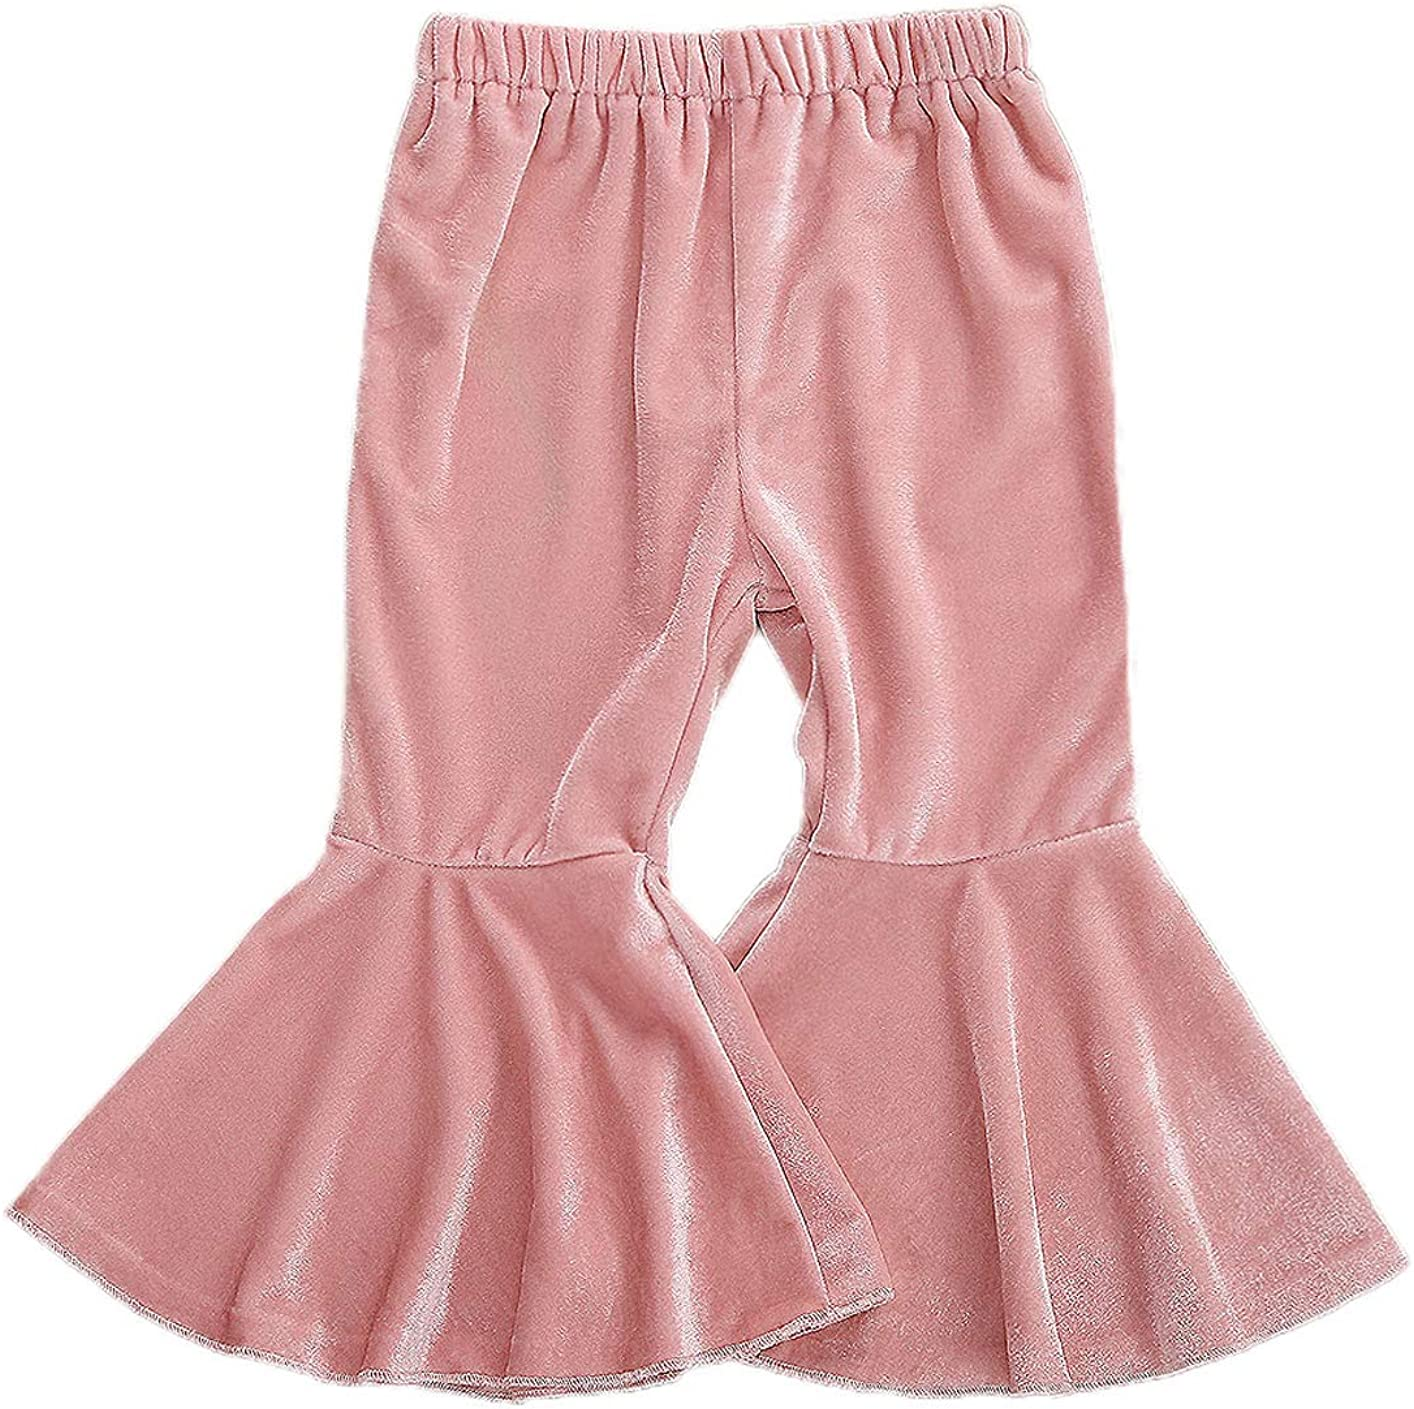 EYIIYE Toddler Girls Flare Pant Trouse Velvet Solid Max 48% OFF Color Ruffle excellence